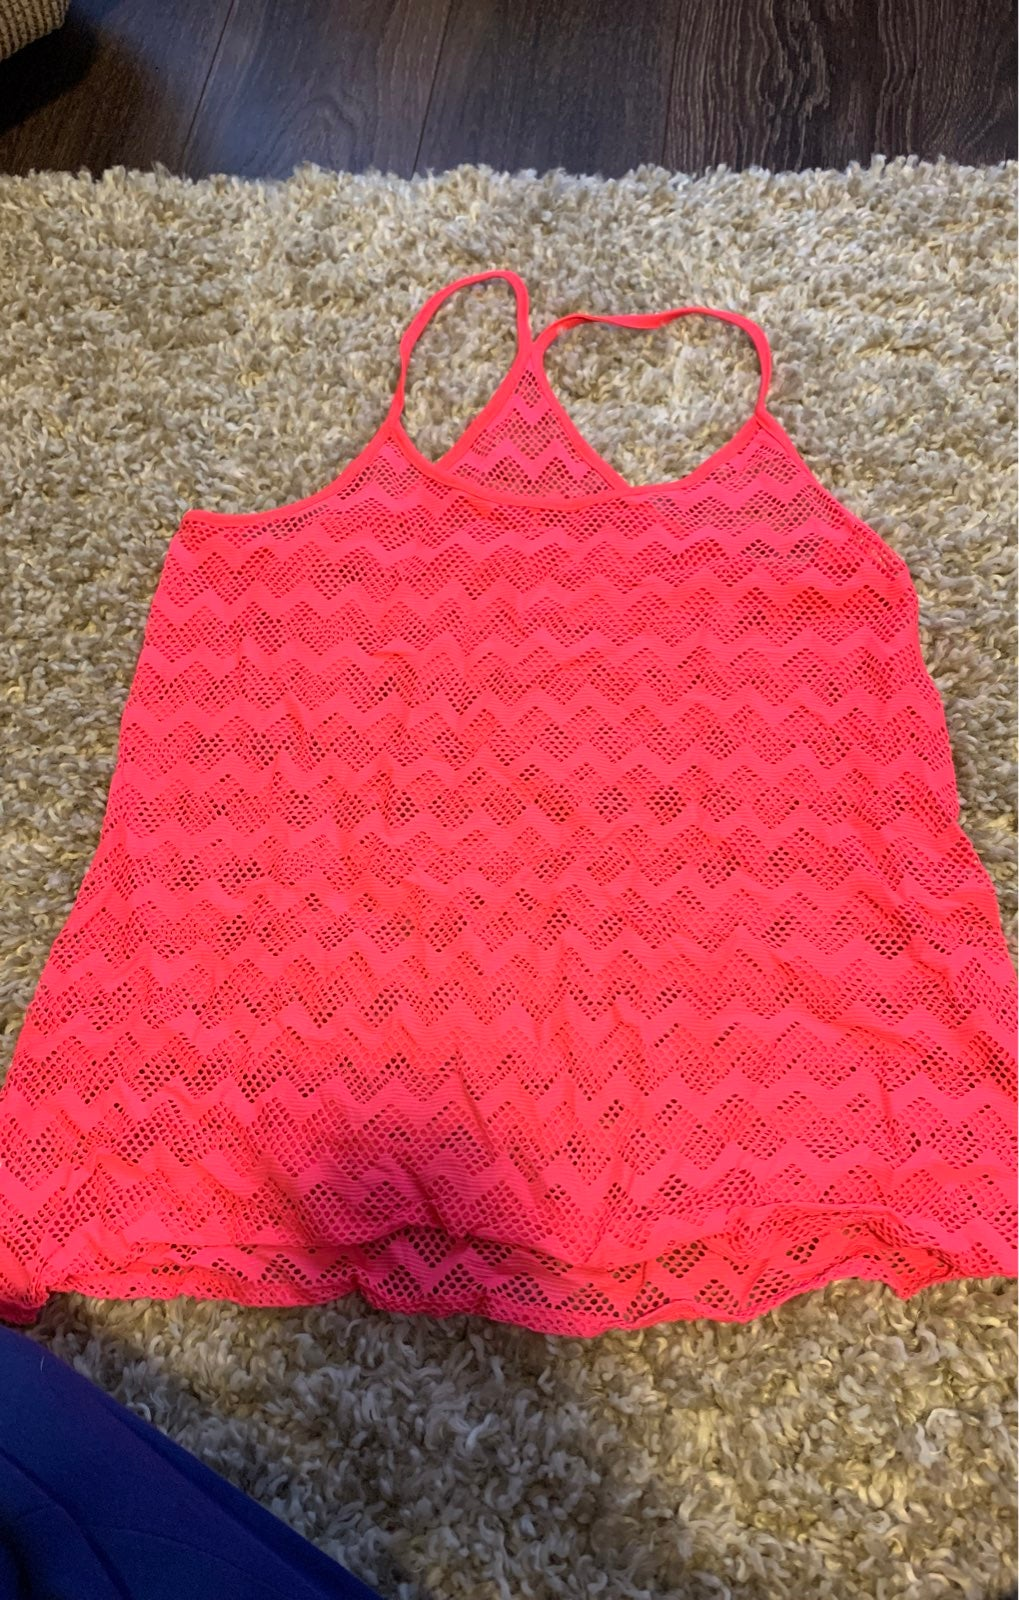 PINK bathing suit cover